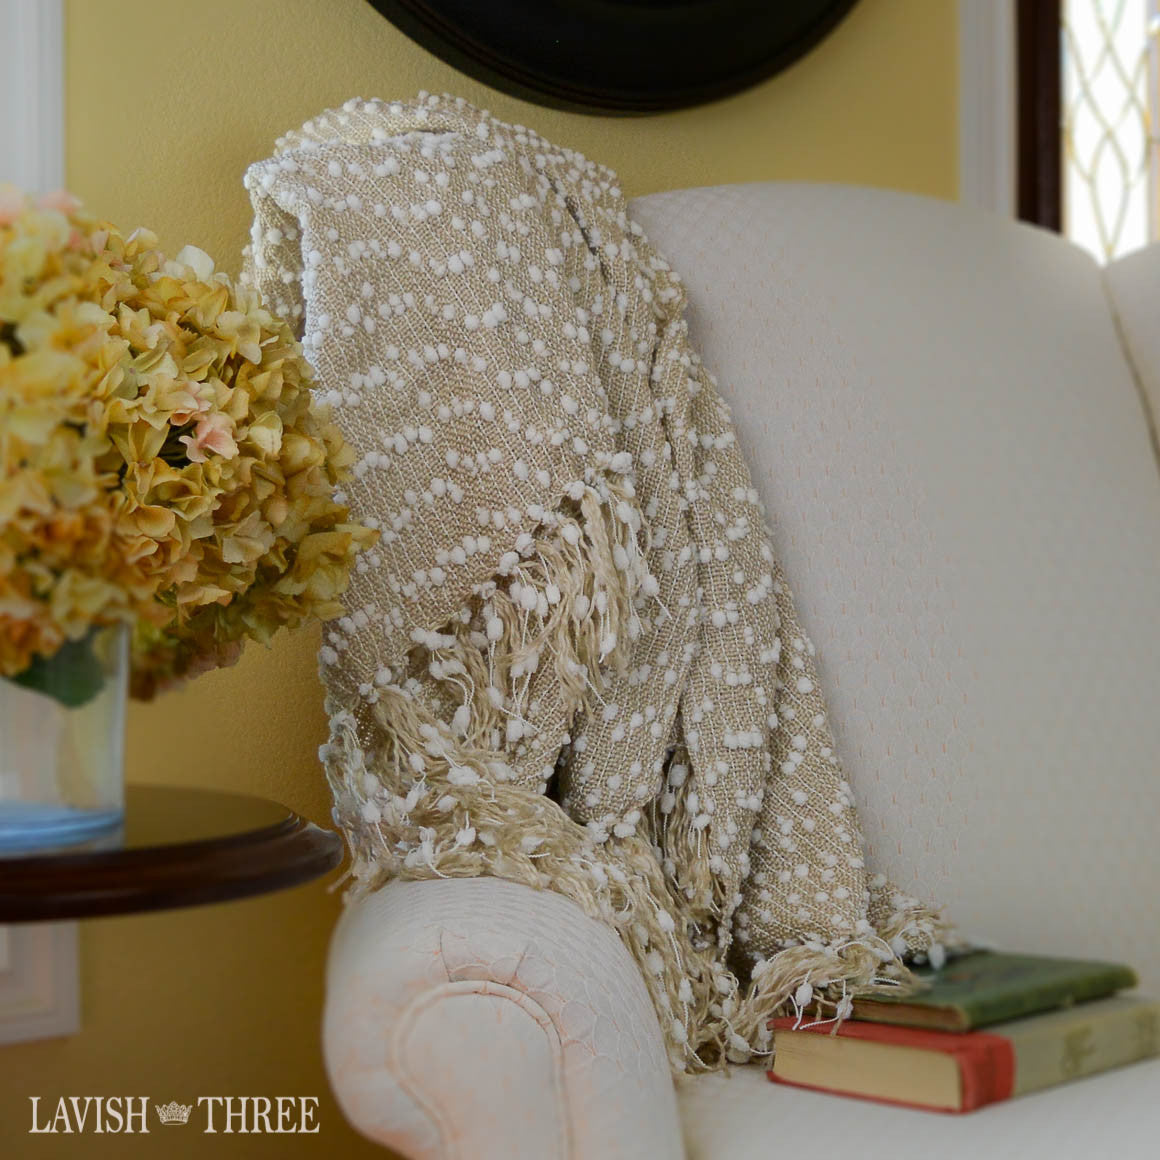 Tan and white decorator throw blanket with fringe